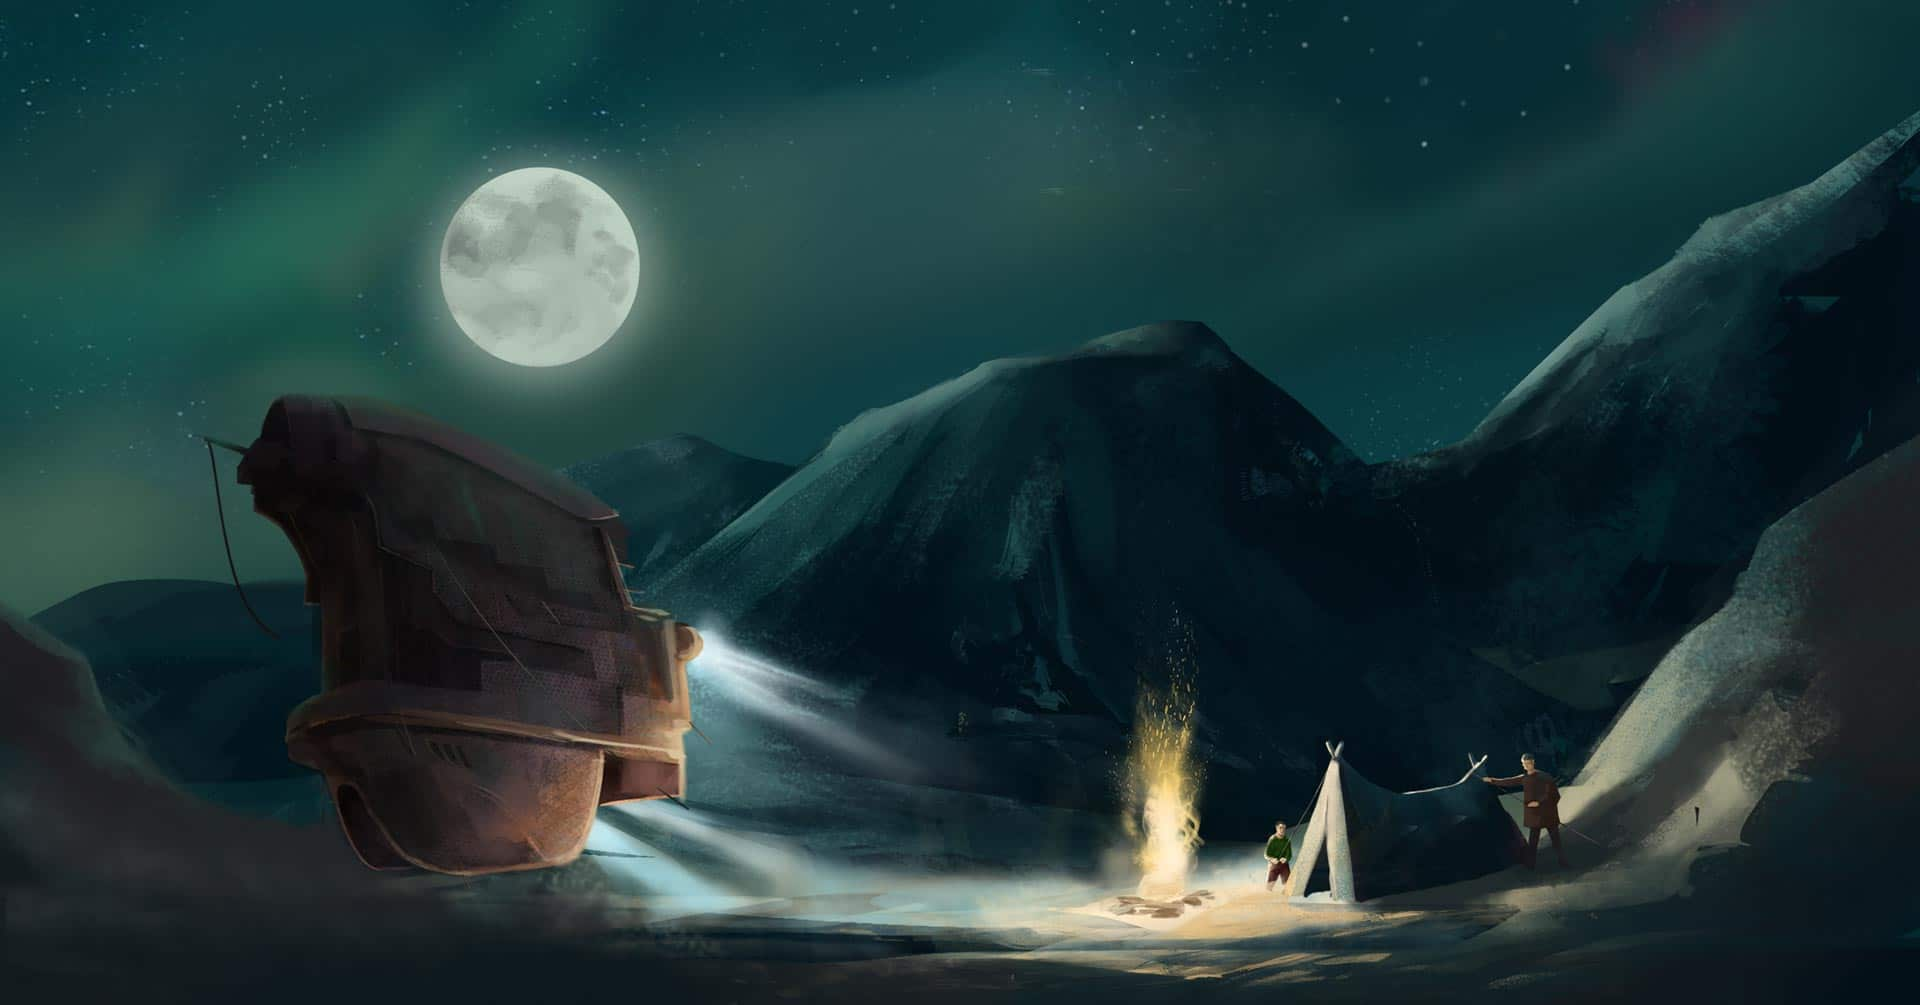 The Embers - Spaceship lighting campfire and resting crew - illustration for Campfire Agency by Jakub Cichecki